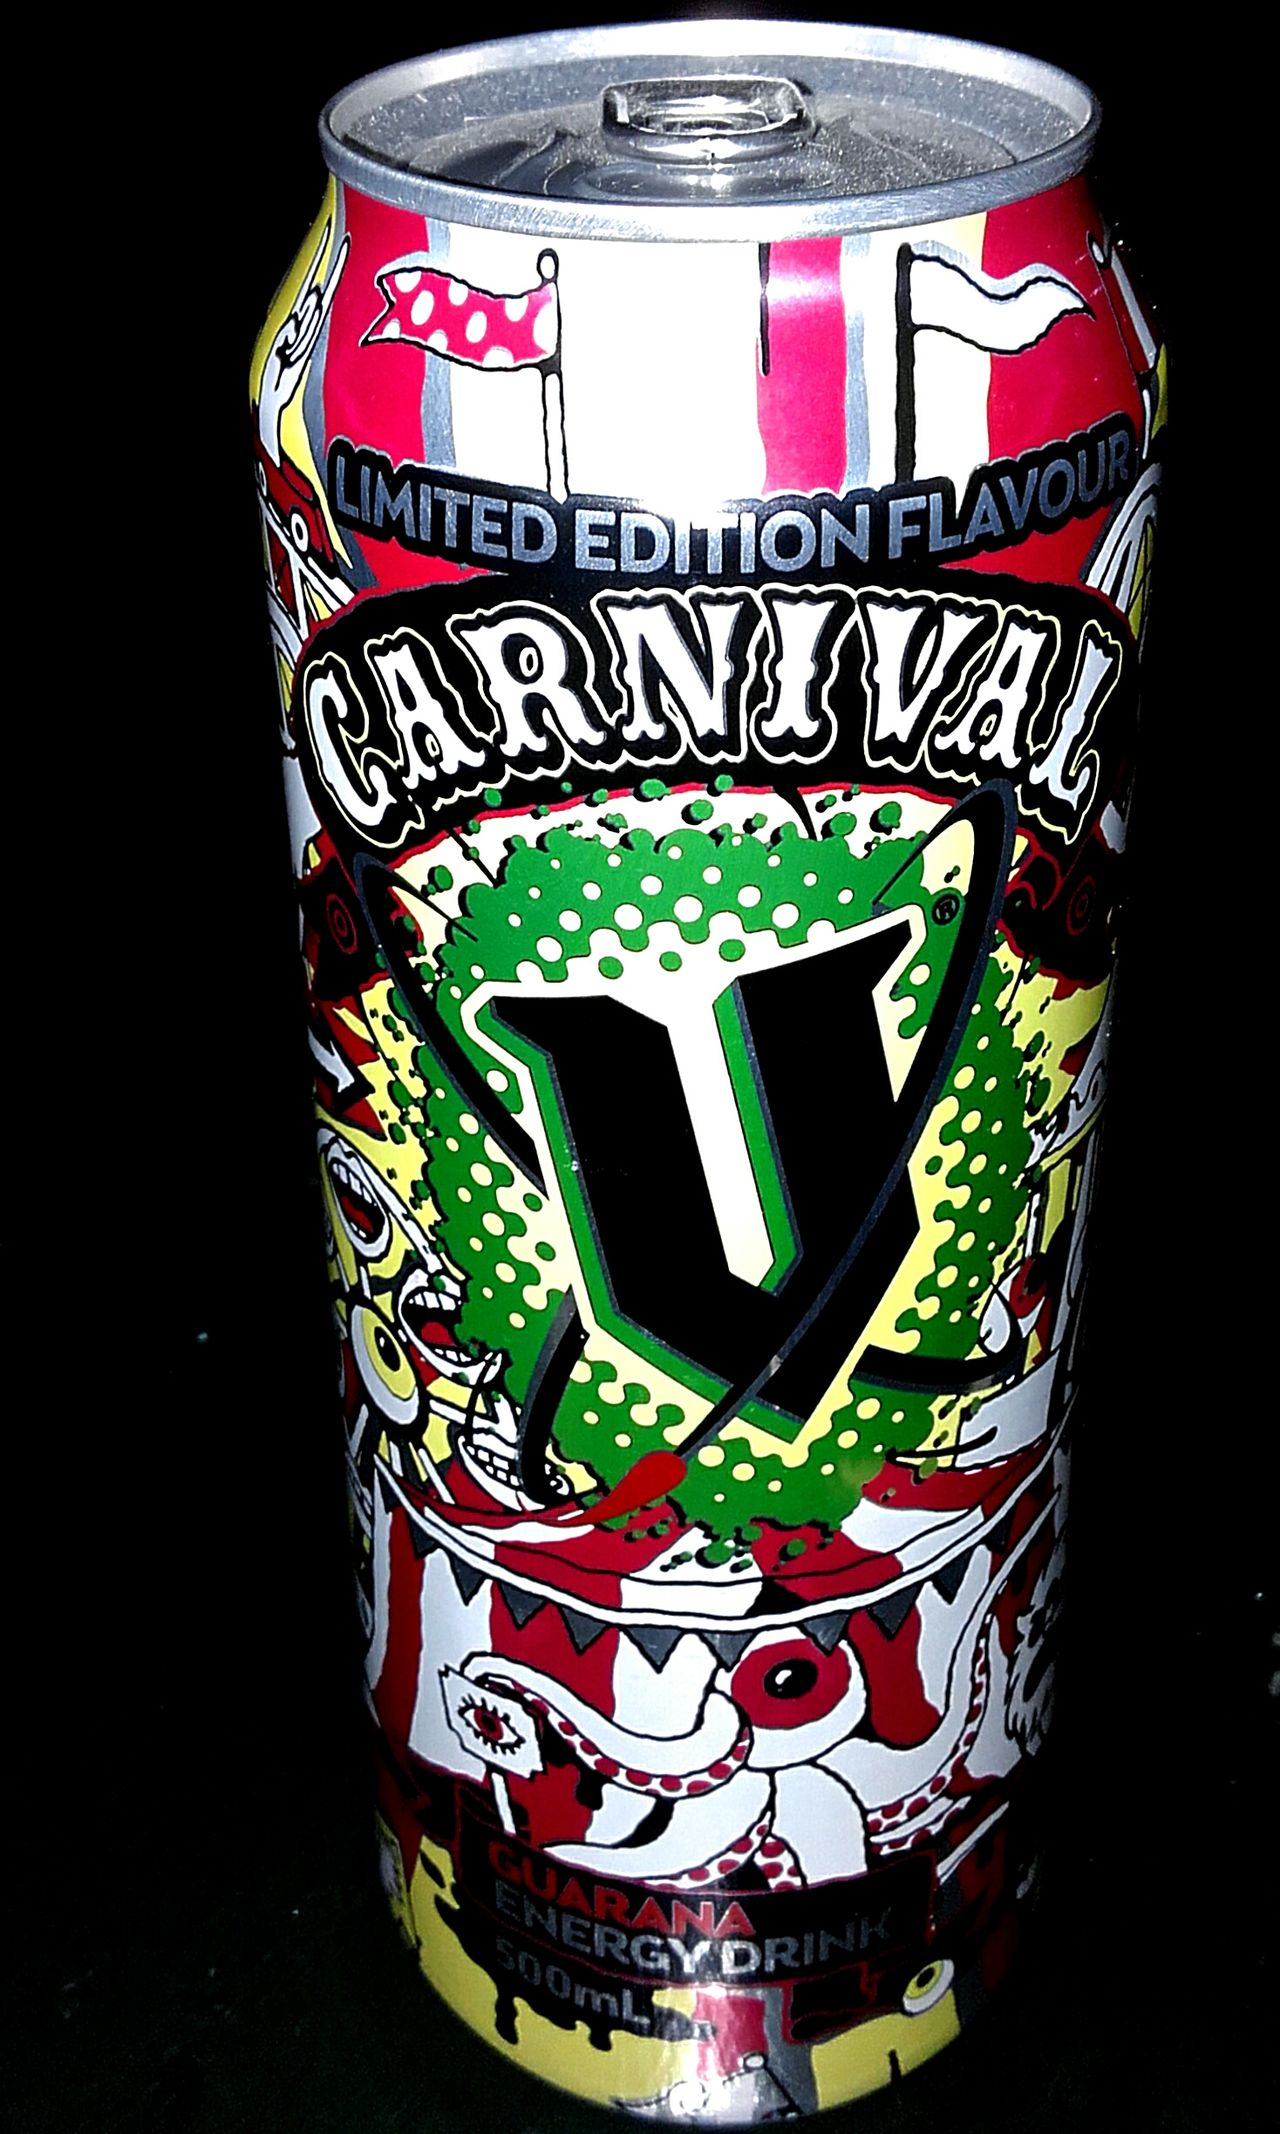 V Energy Drink Energydrink Limited Edition Flavor Limited Edition Limitededitions Limited Edition Flavour Limitededition Guarana Energy Drinks V Energy Drink Energydrinks Aluminum Can Energy Drinks EnergyDrinkCans Energy Drink Cans Cans Drink Can Aluminium Cans Can Collection Energydrinkcan Venergydrink Carnival Aluminiumcan Aluminiumcans Aluminium Can